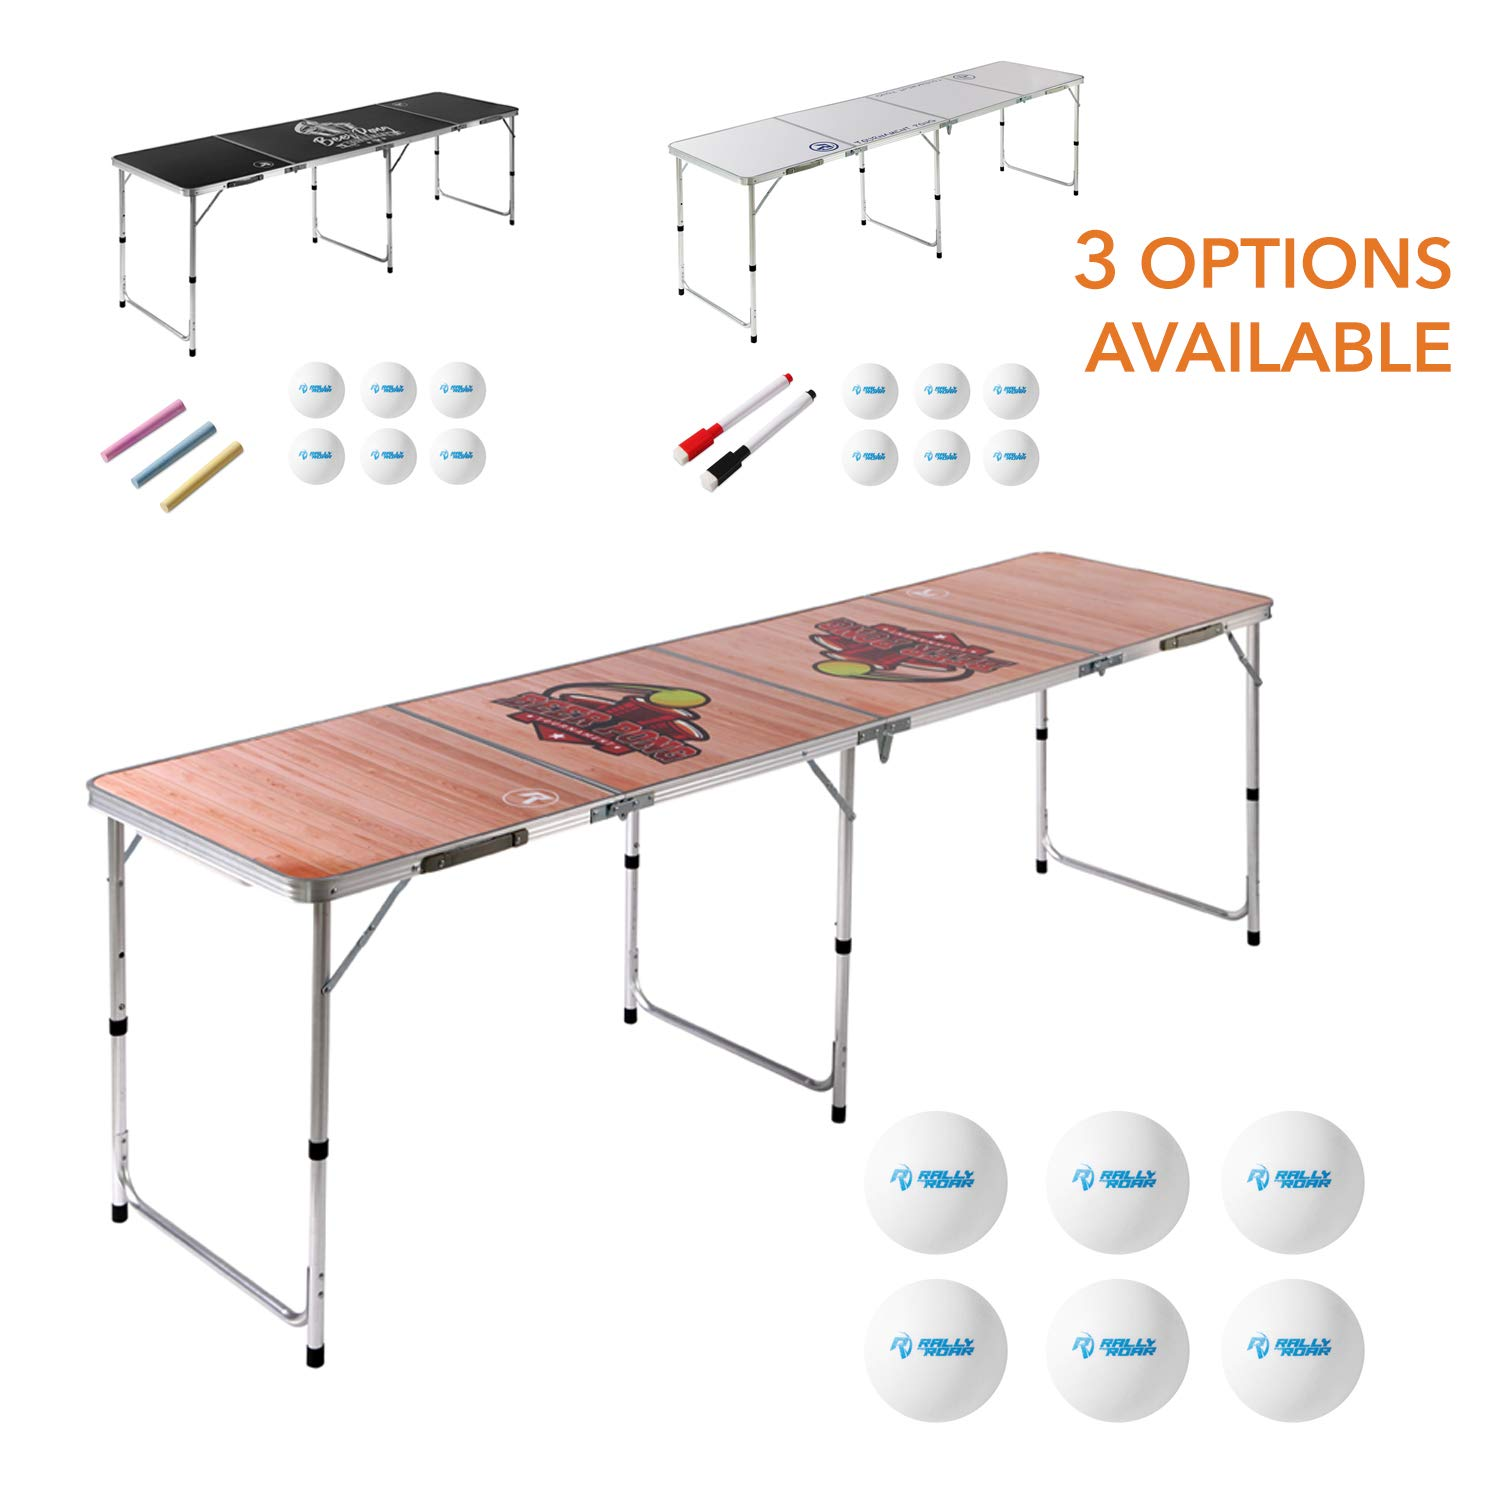 8 Foot Beer Pong Table WOOD GRAIN by Rally and Roar - Portable Party Drinking Games - Official 8ft x 2ft x 27.5in Regulation Size - Tournament Ready - Premium Indoor-Outdoor Beirut Table - Lightweight by Day 1 Fitness